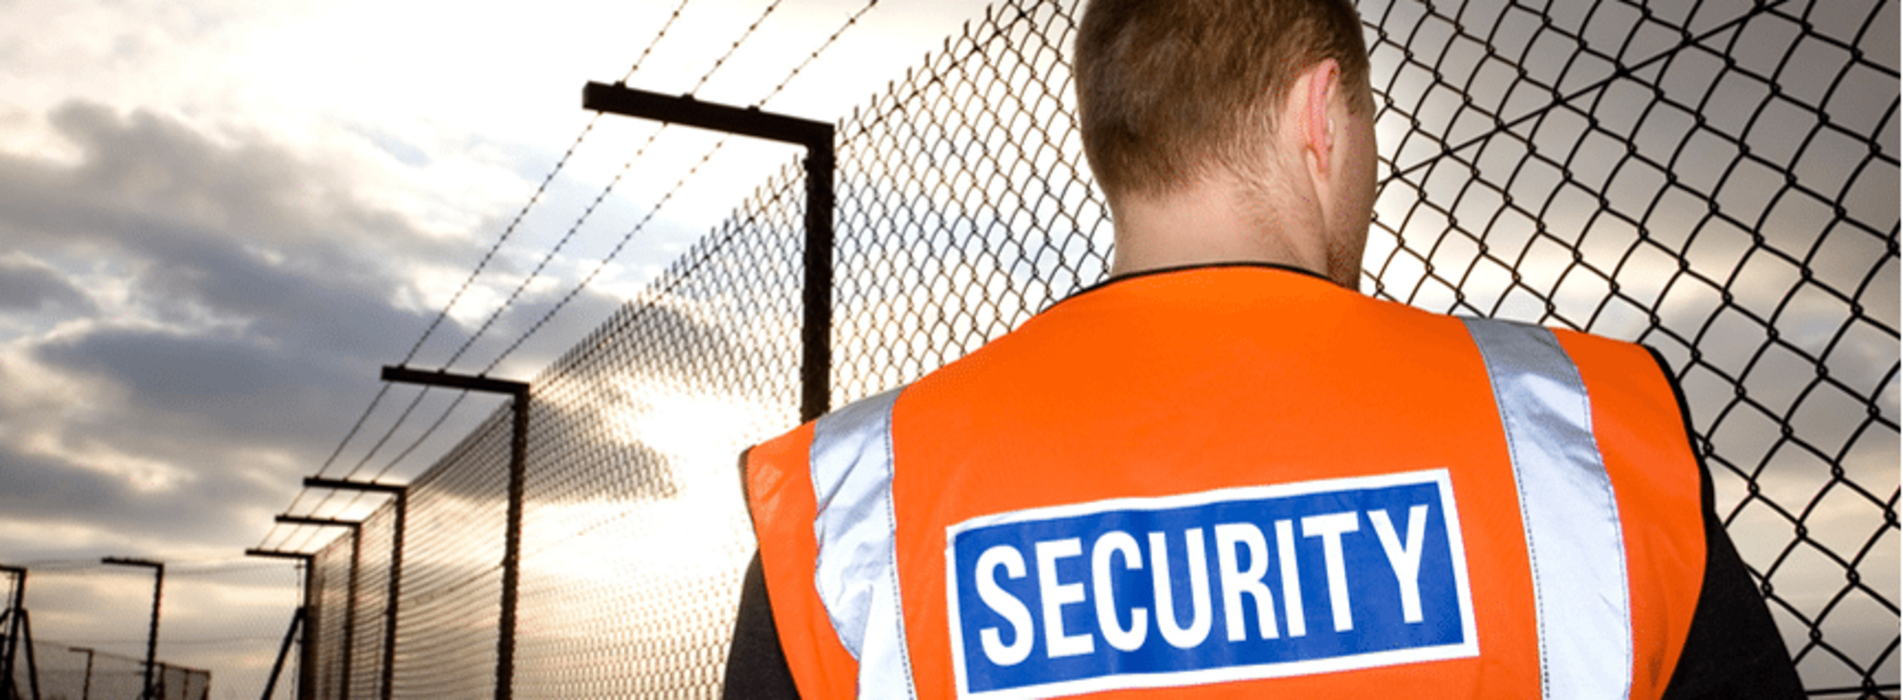 Security Guards Nottingham, Security Companies in Nottingham, Retail Security Services Nottingham, Security Needed. Construction Security, Static Security, Site Security, Security Guard, Nottingham Security.